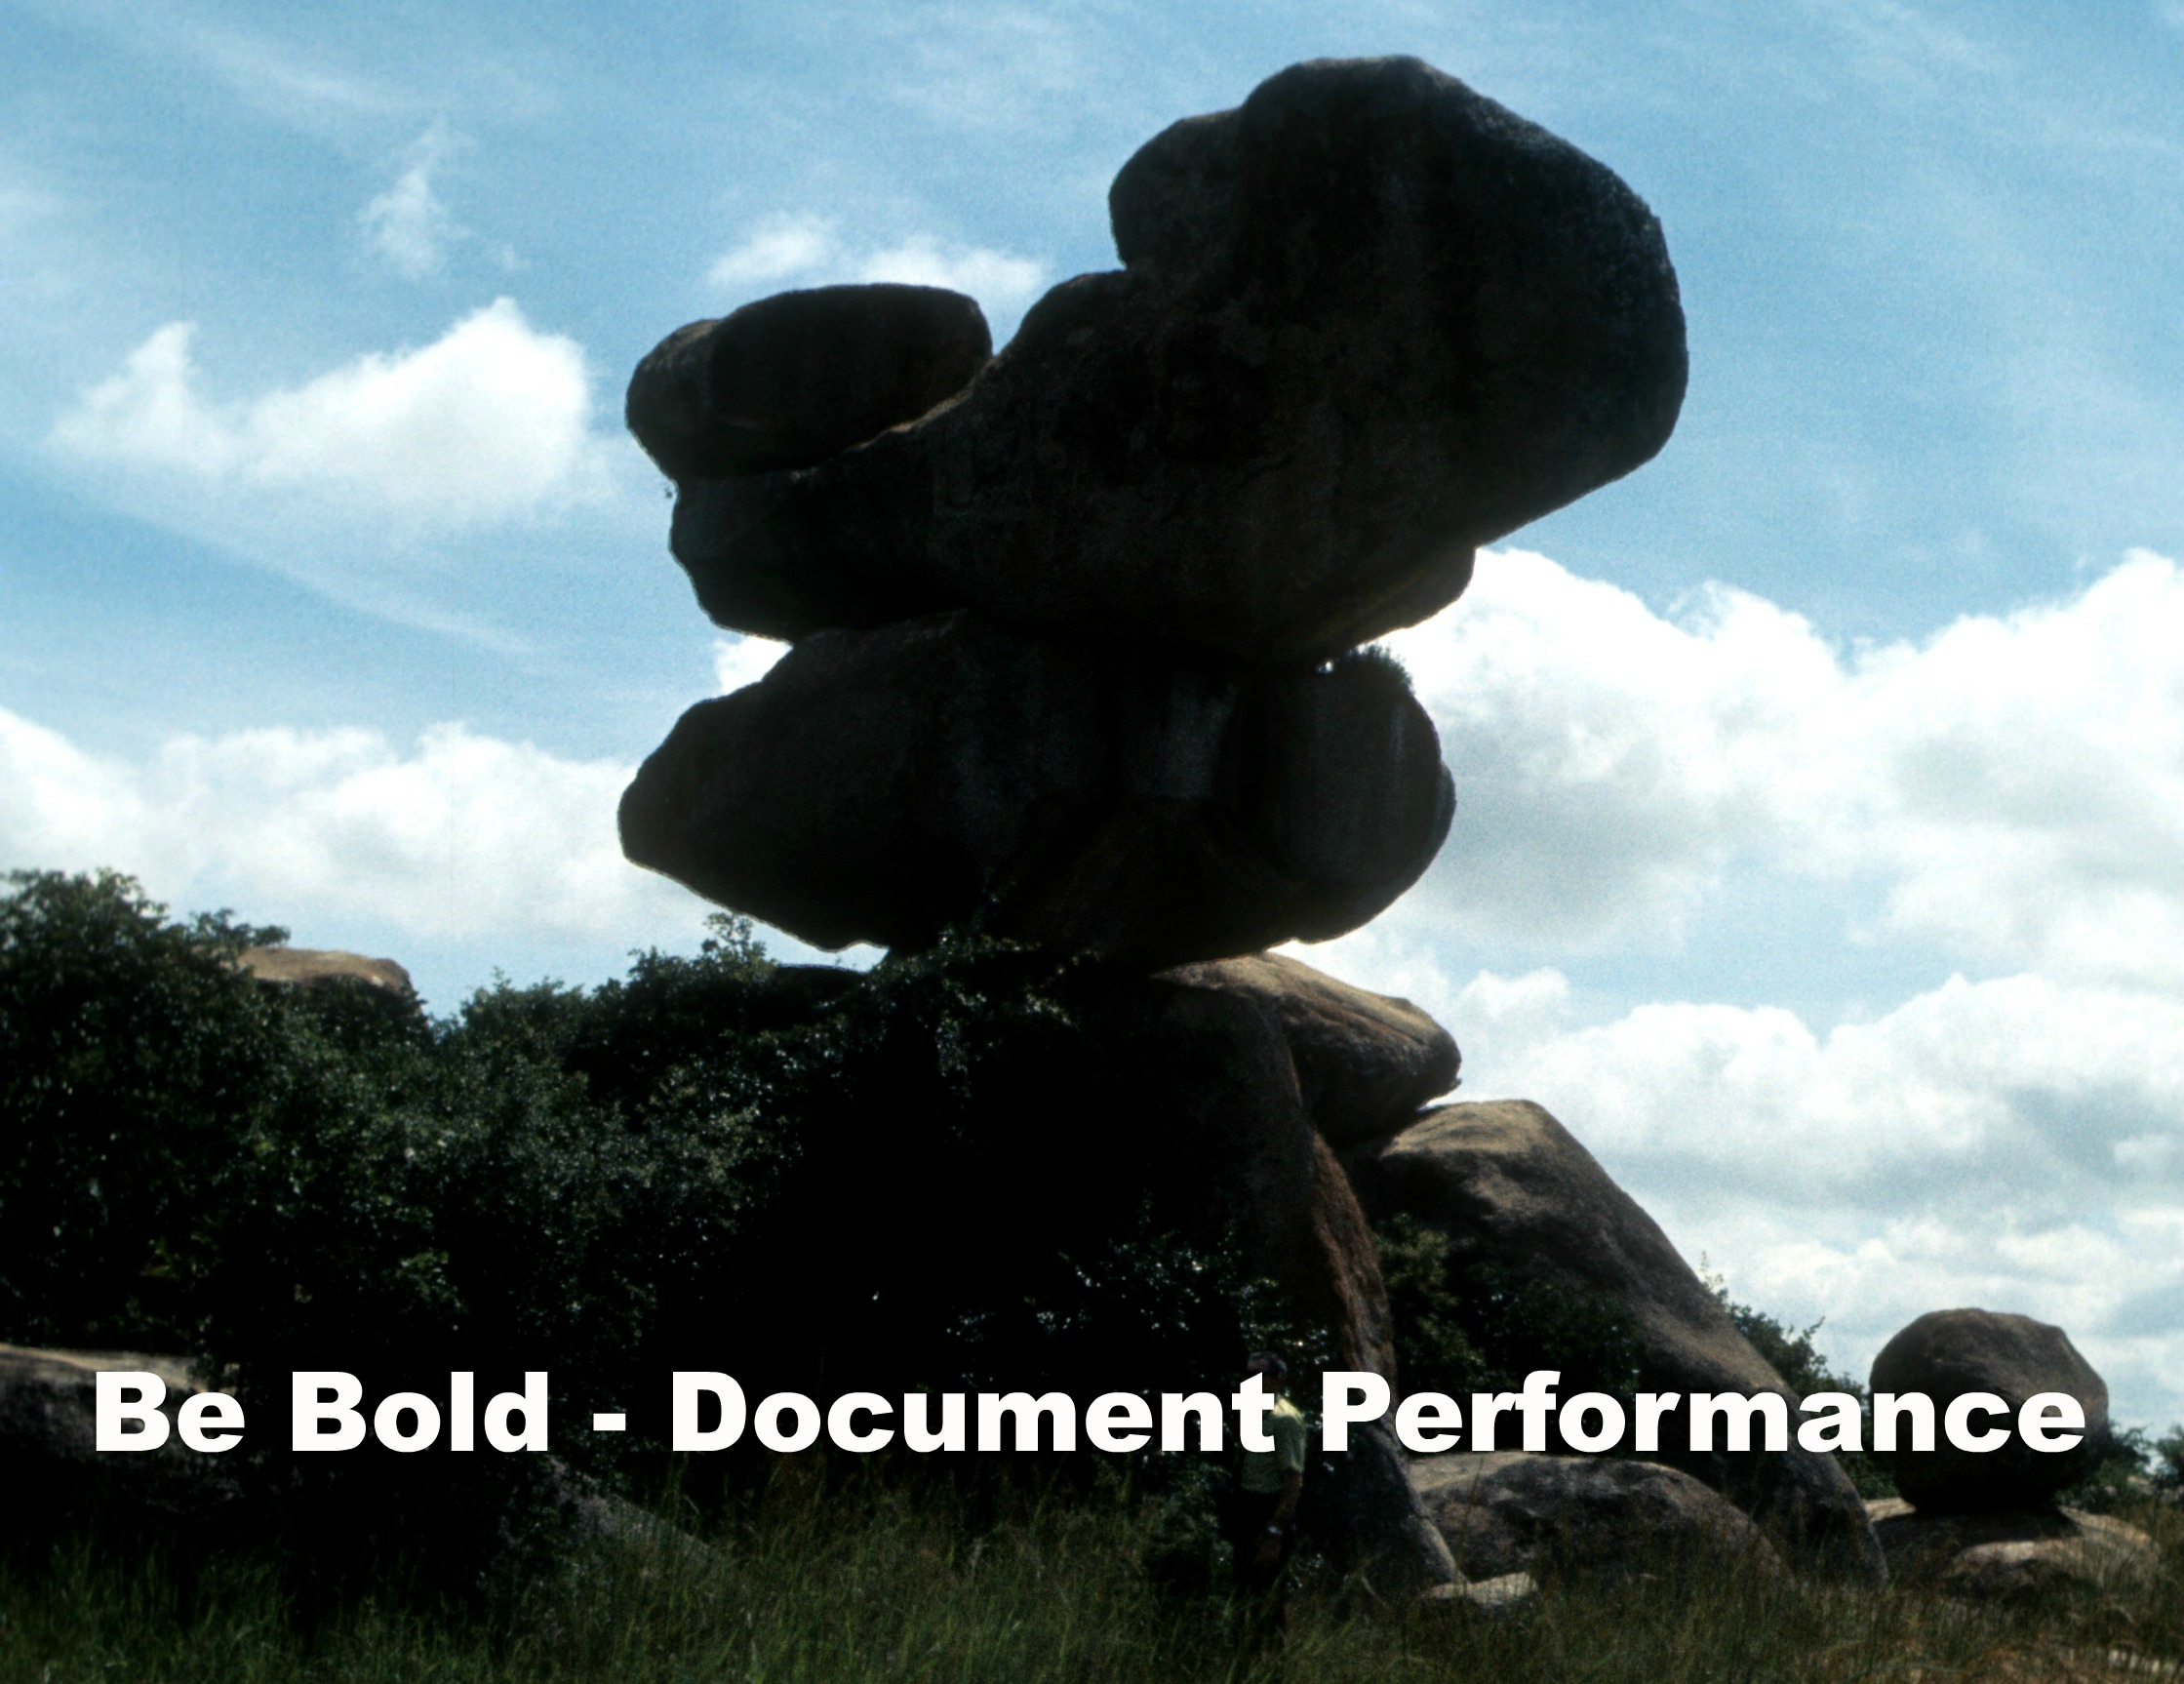 teetering rock formation with caption